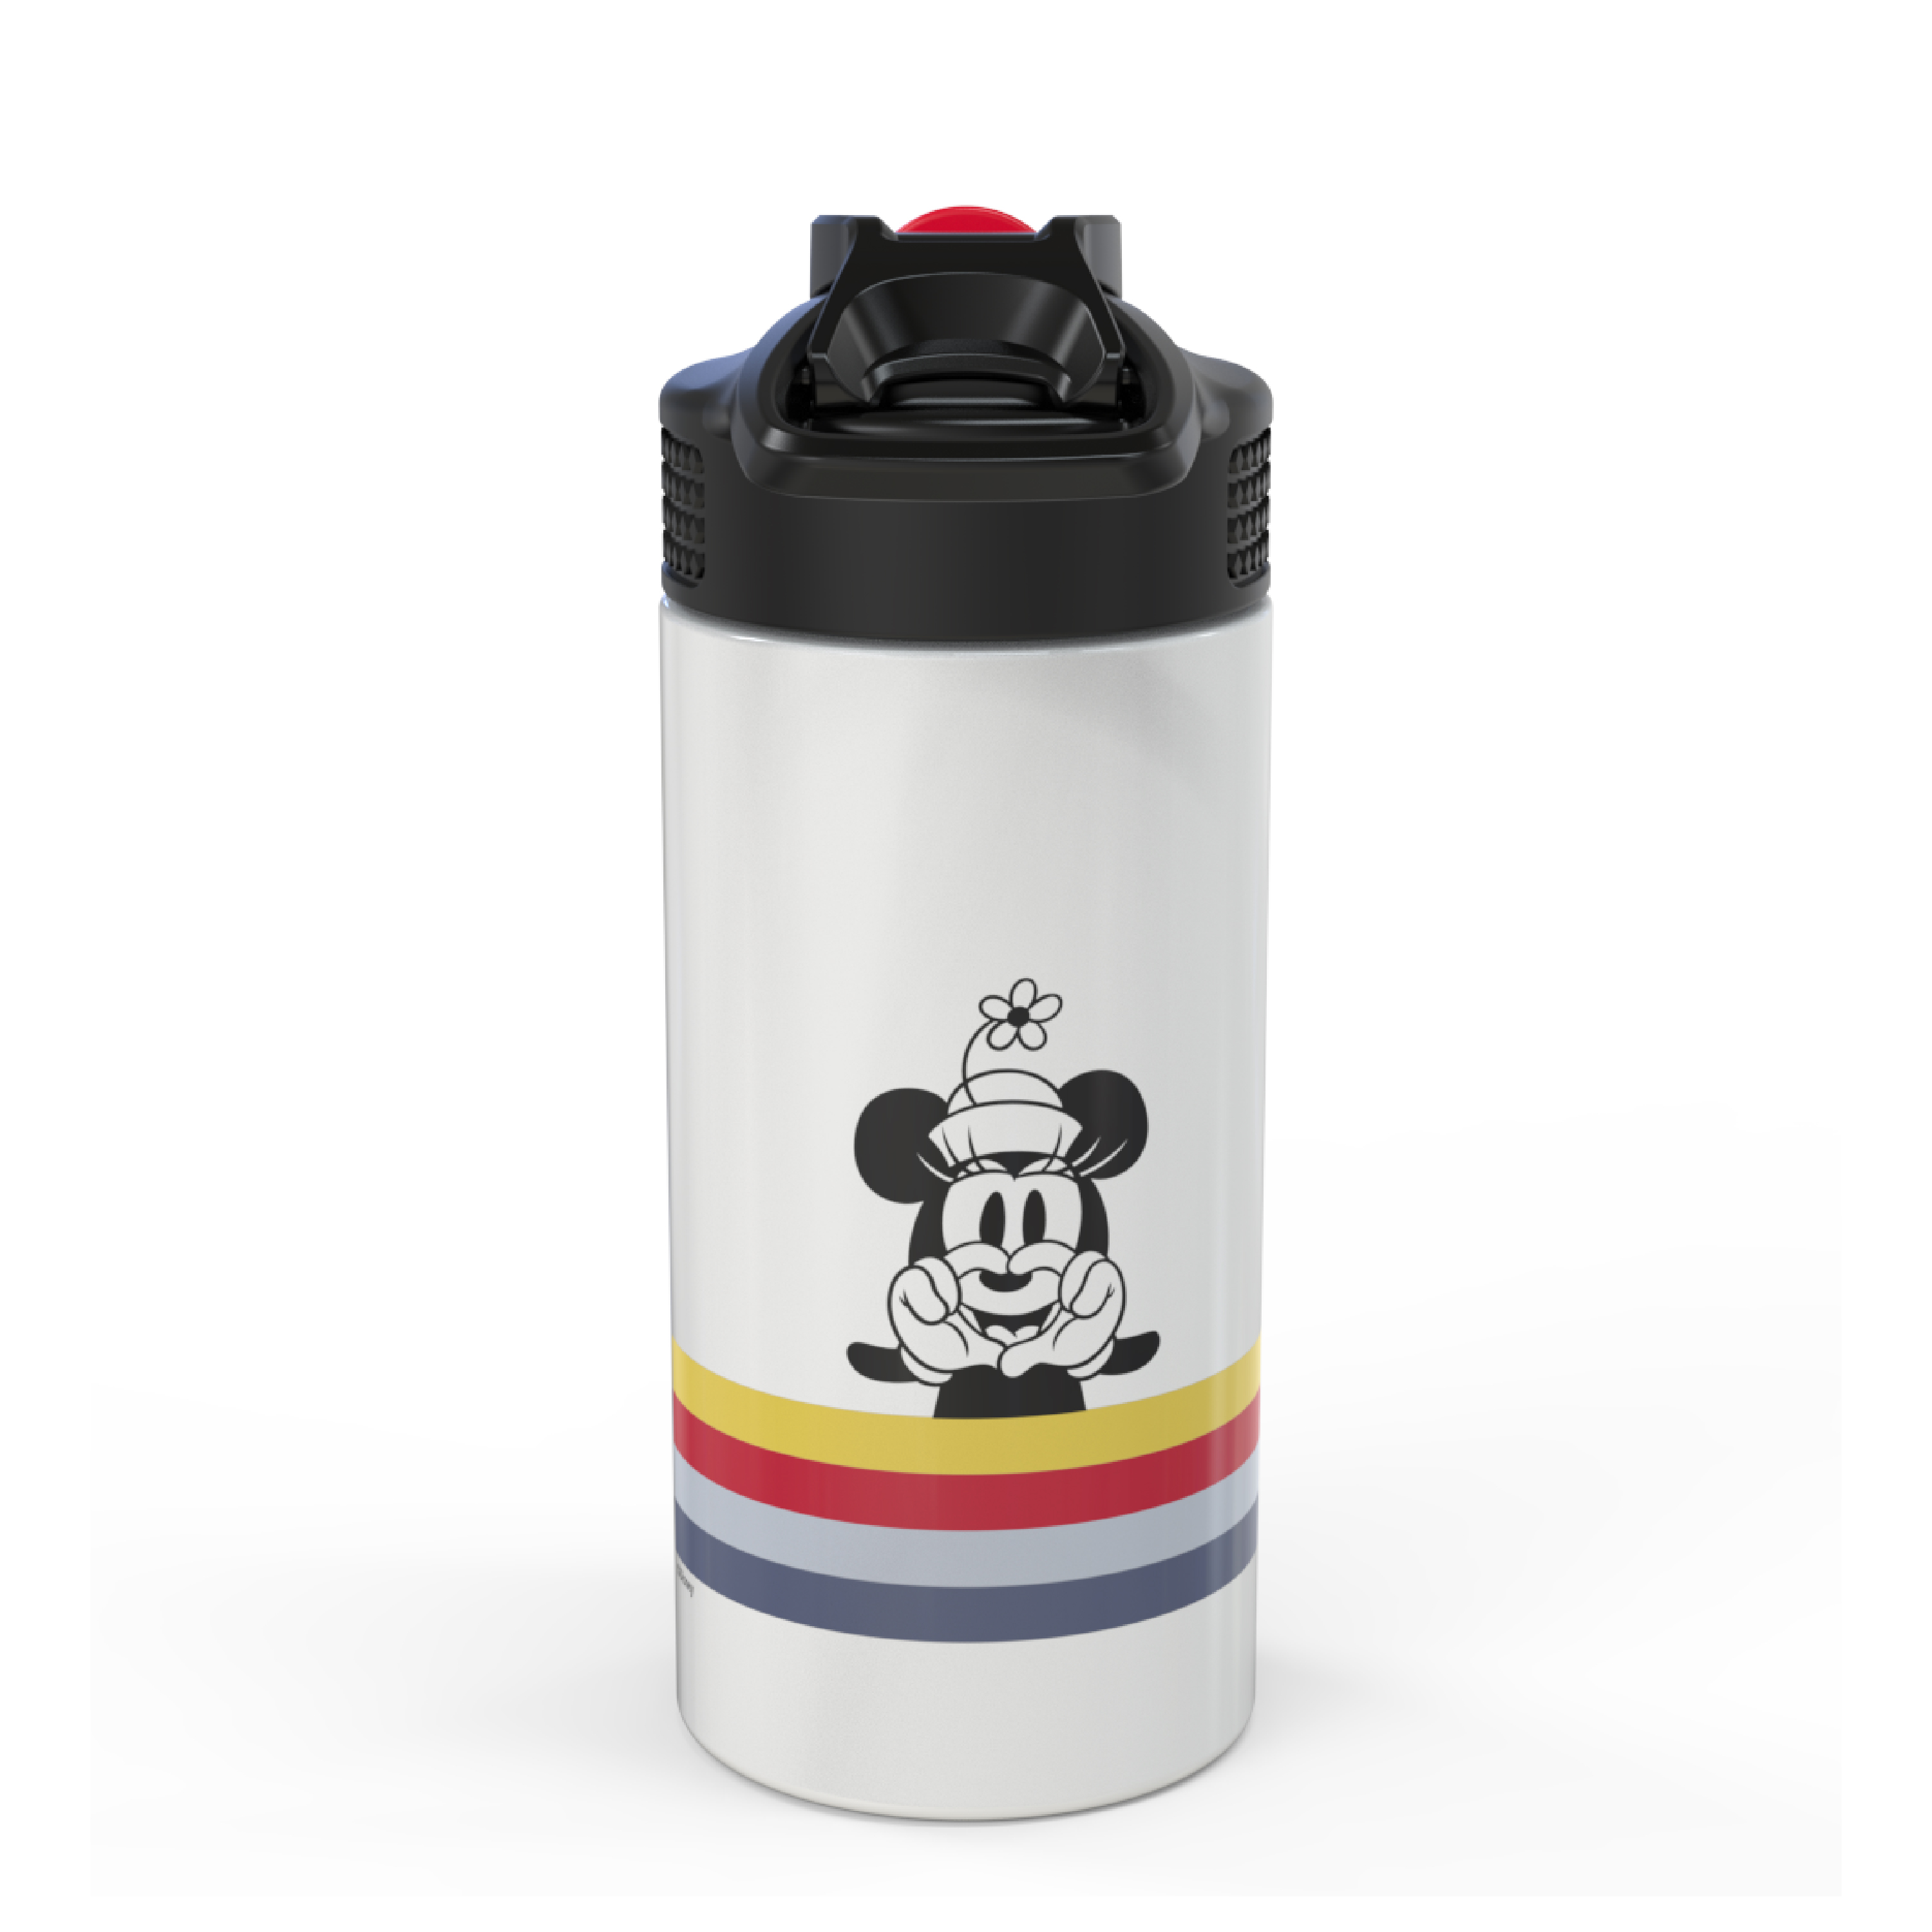 Disney 14 ounce Stainless Steel Vacuum Insulated Water Bottle, Mickey Mouse and Minnie Mouse slideshow image 2